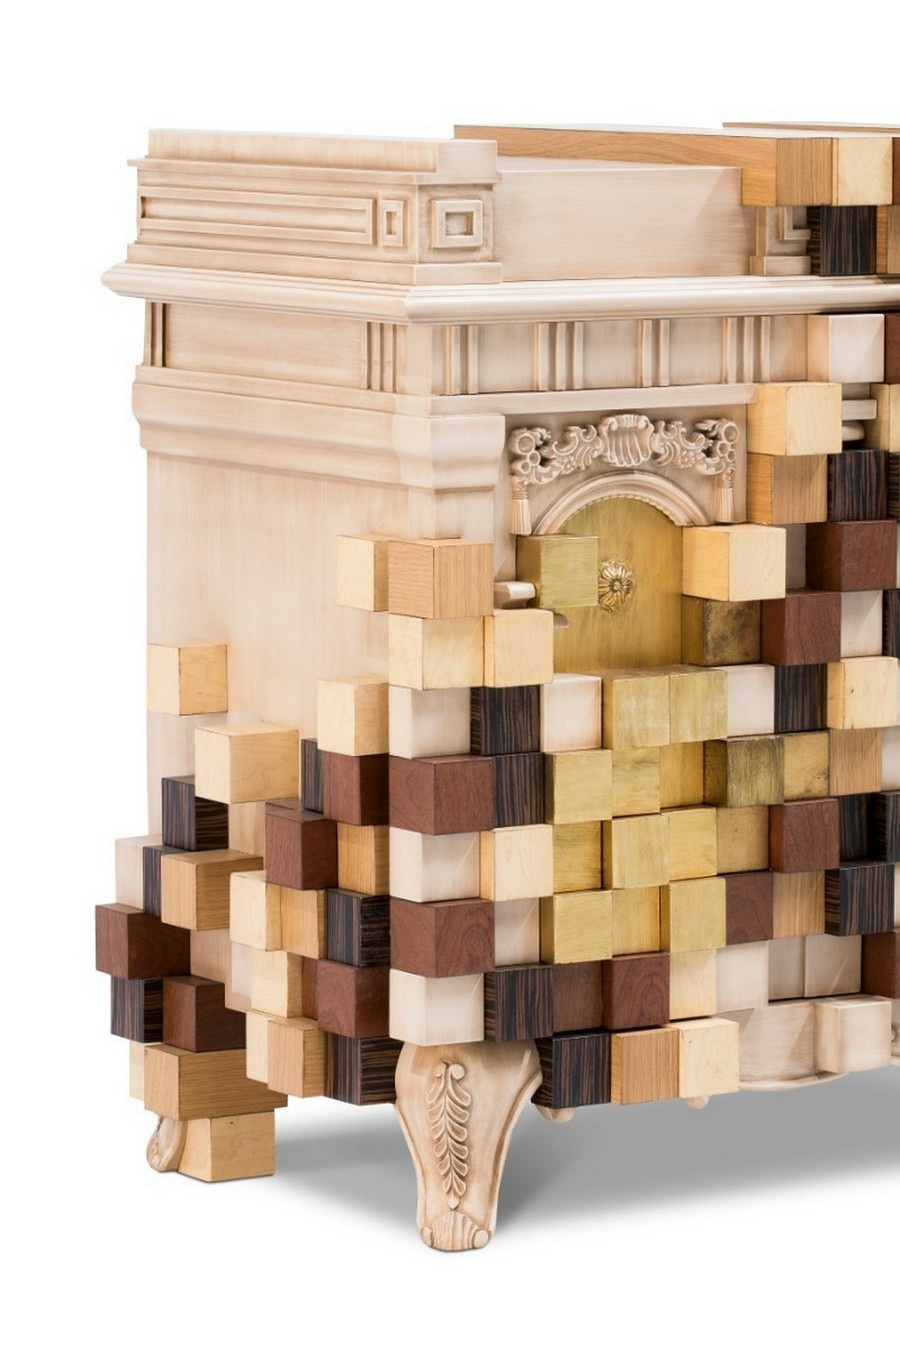 SEE PORTUGUESE BRAND BOCA DO LOBO'S TOP TRENDS FOR 2019 top trends SEE PORTUGUESE BRAND BOCA DO LOBO'S TOP TRENDS FOR 2019 Wood2